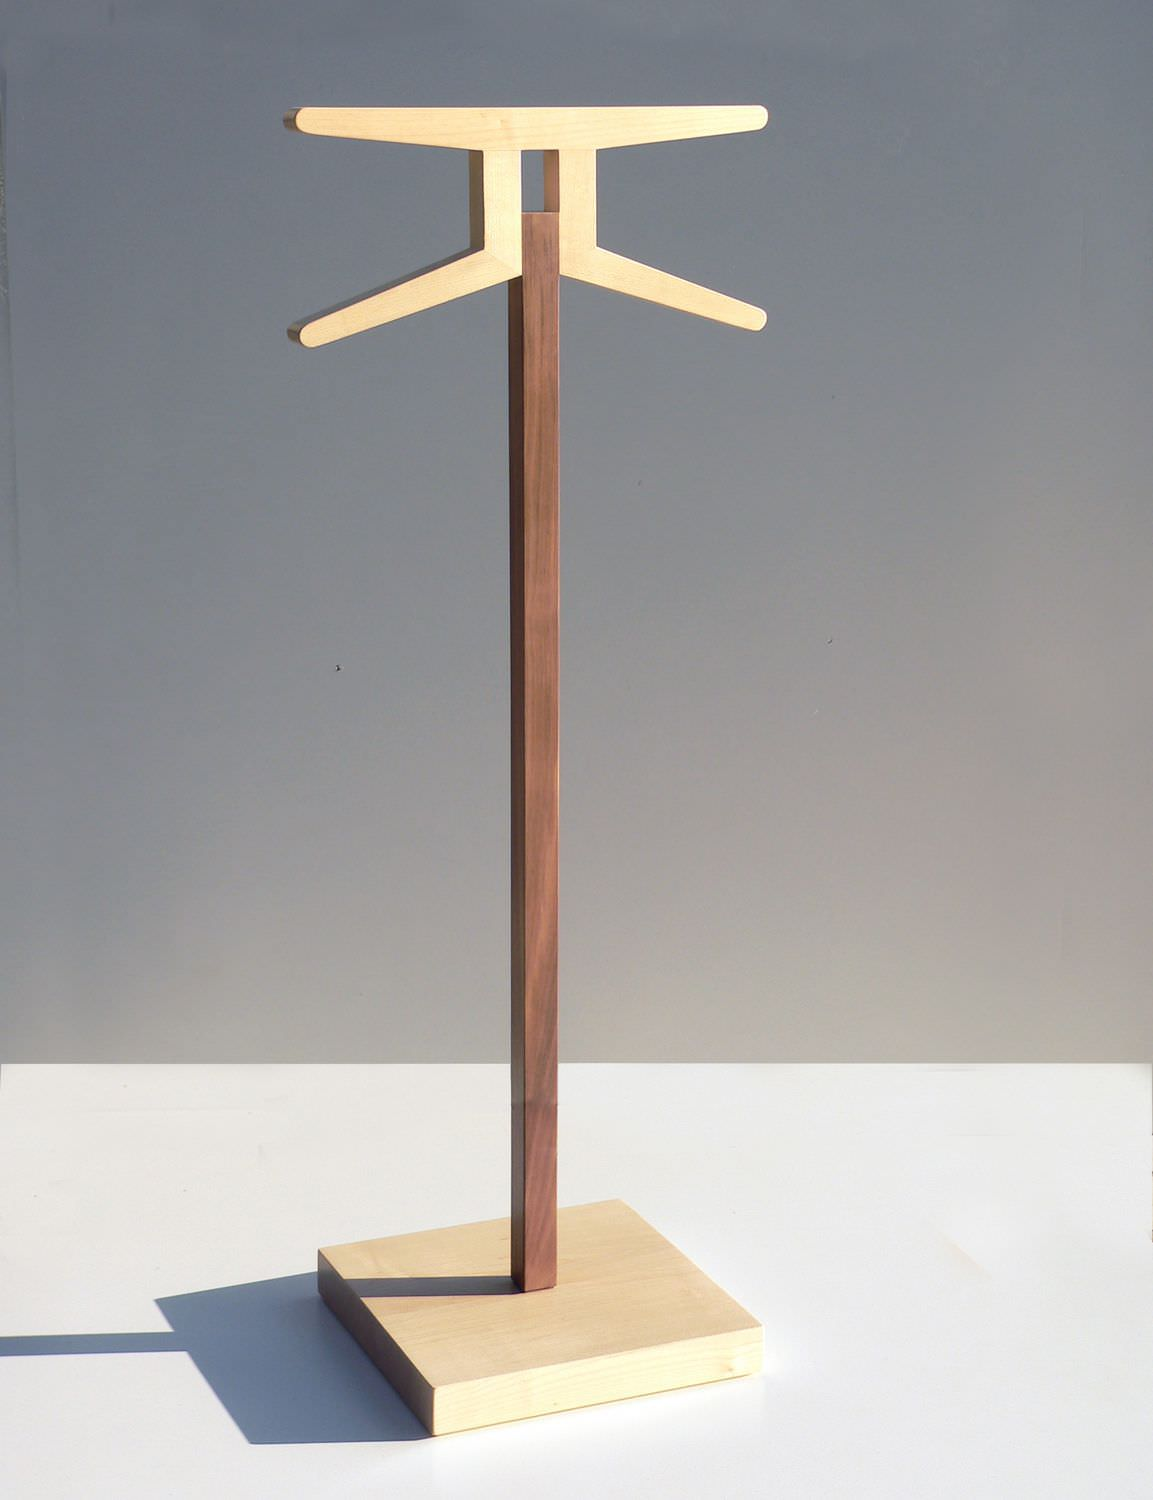 floor-standing valet stand / contemporary / wooden - signs 1